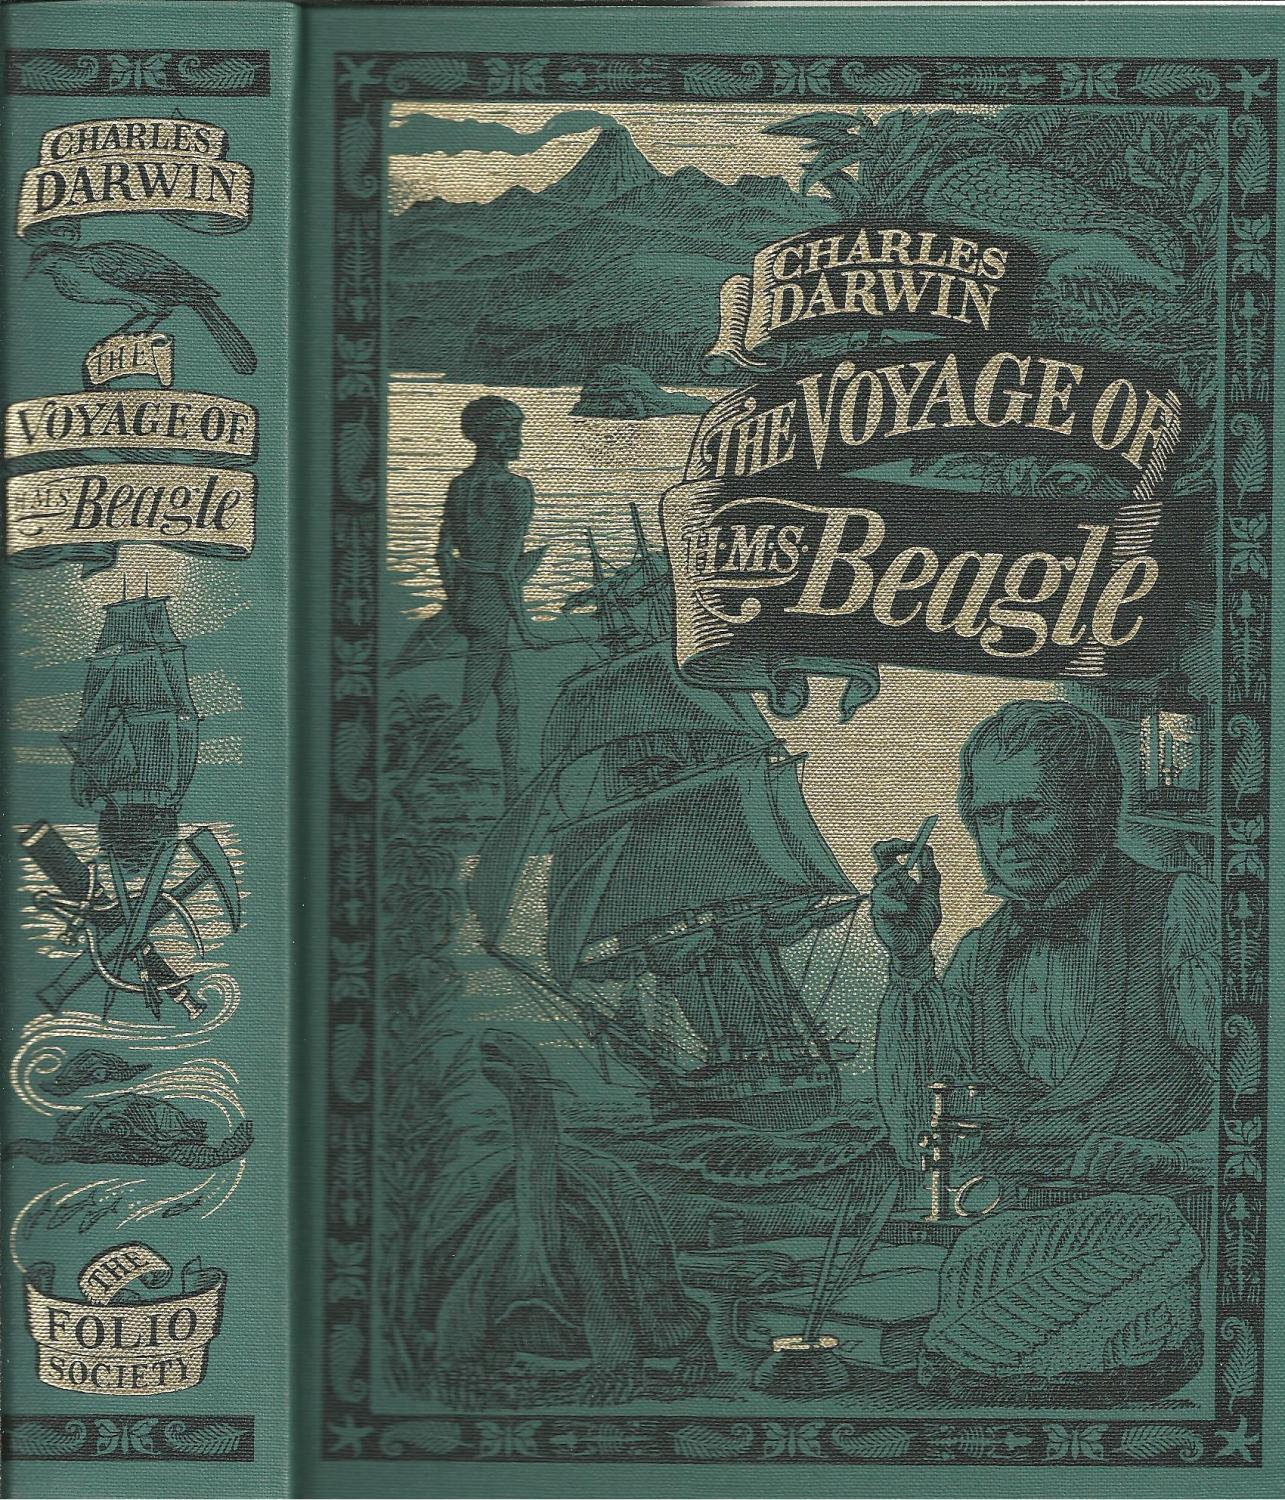 The Voyage Of H M S Beagle By Darwin Charles Como Novo As New